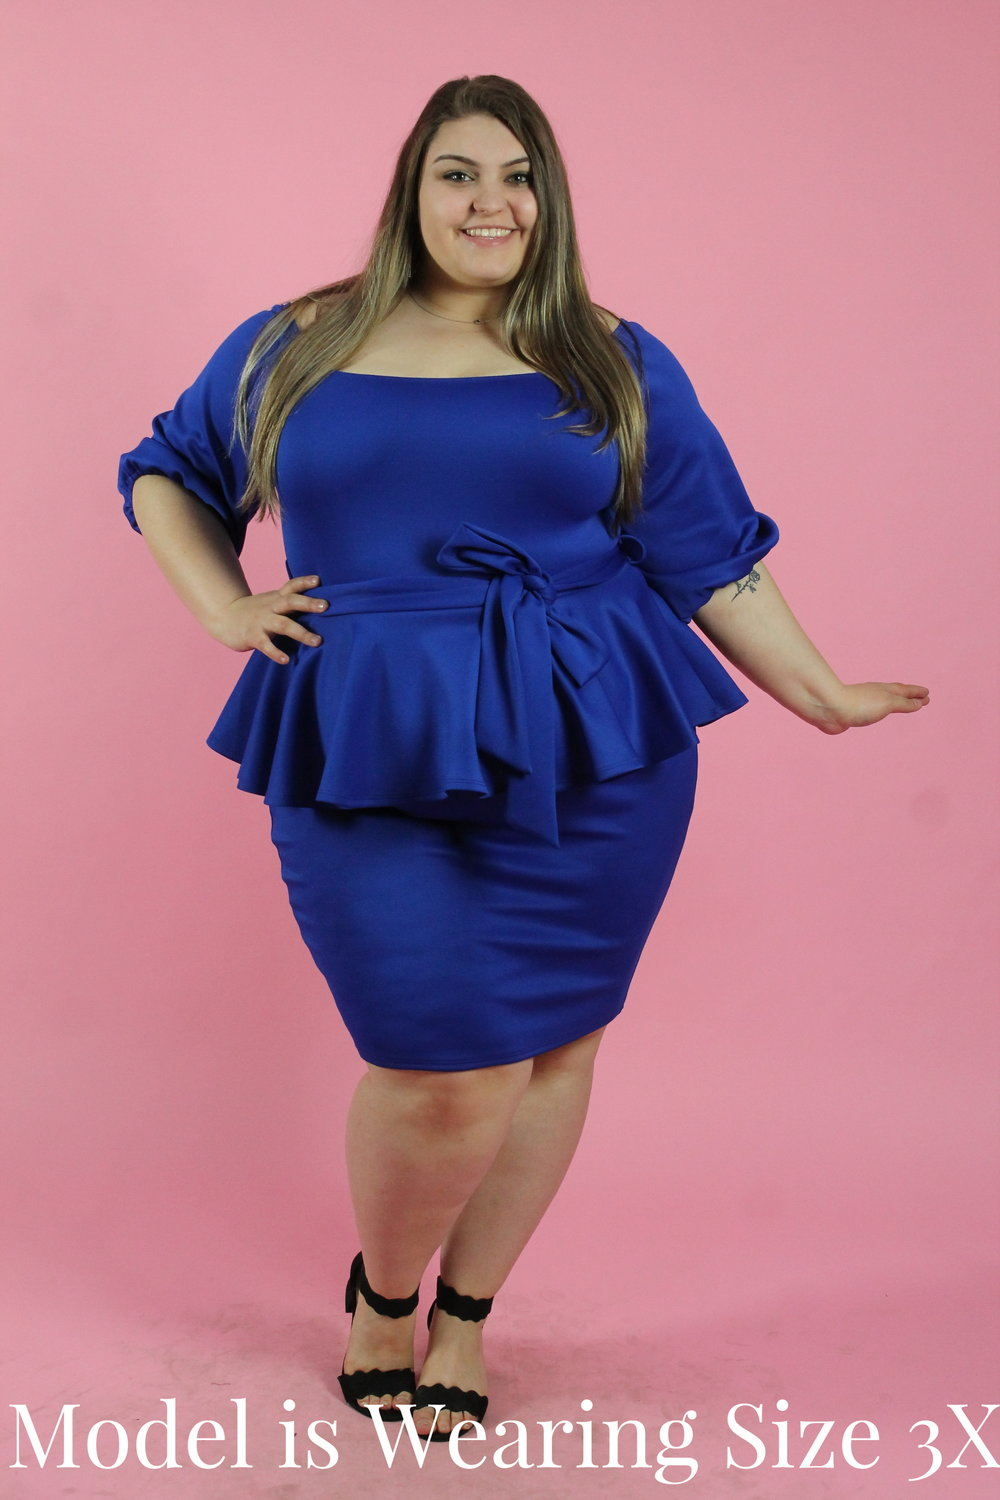 Royal Blue Dress with Puffy Sleeves